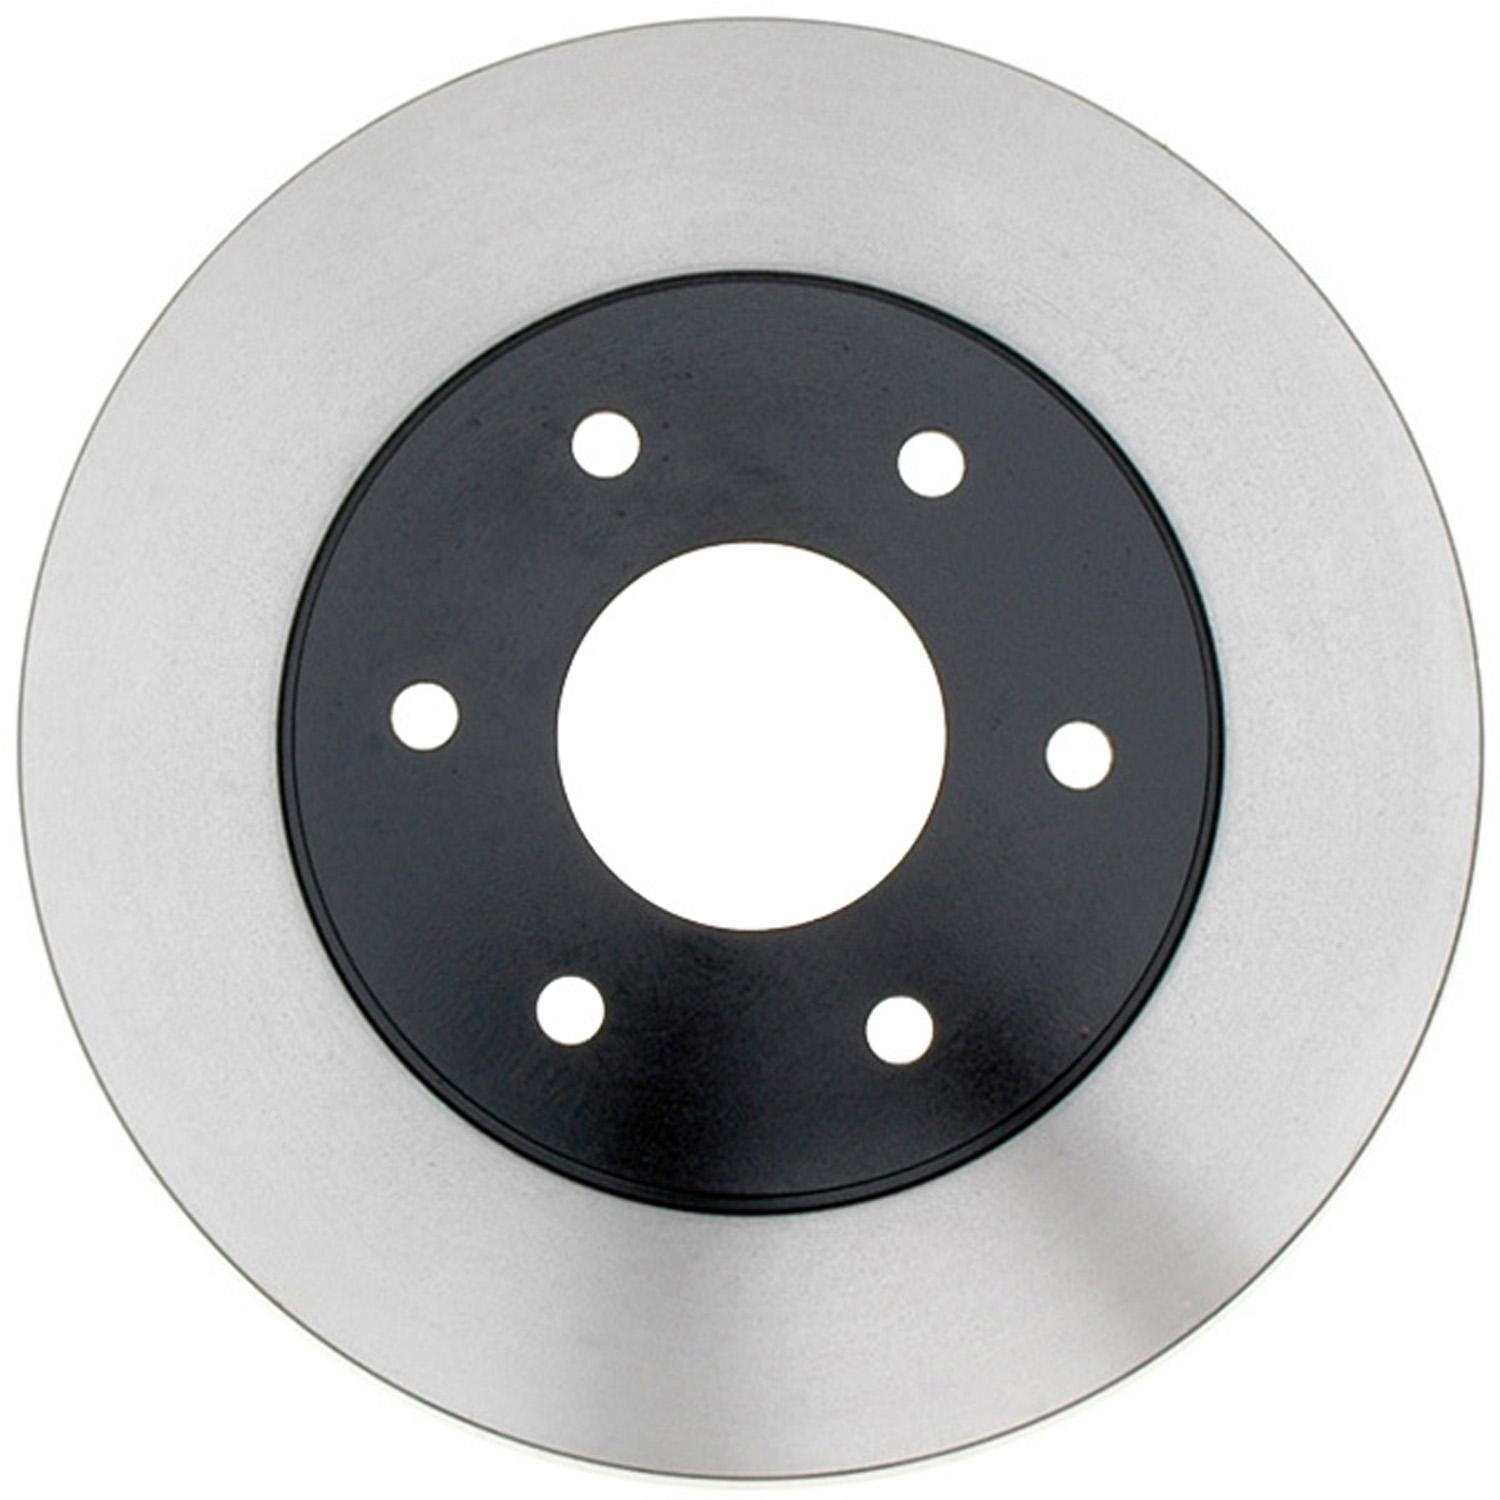 ACDELCO PROFESSIONAL BRAKES - Disc Brake Rotor - ADU 18A1636